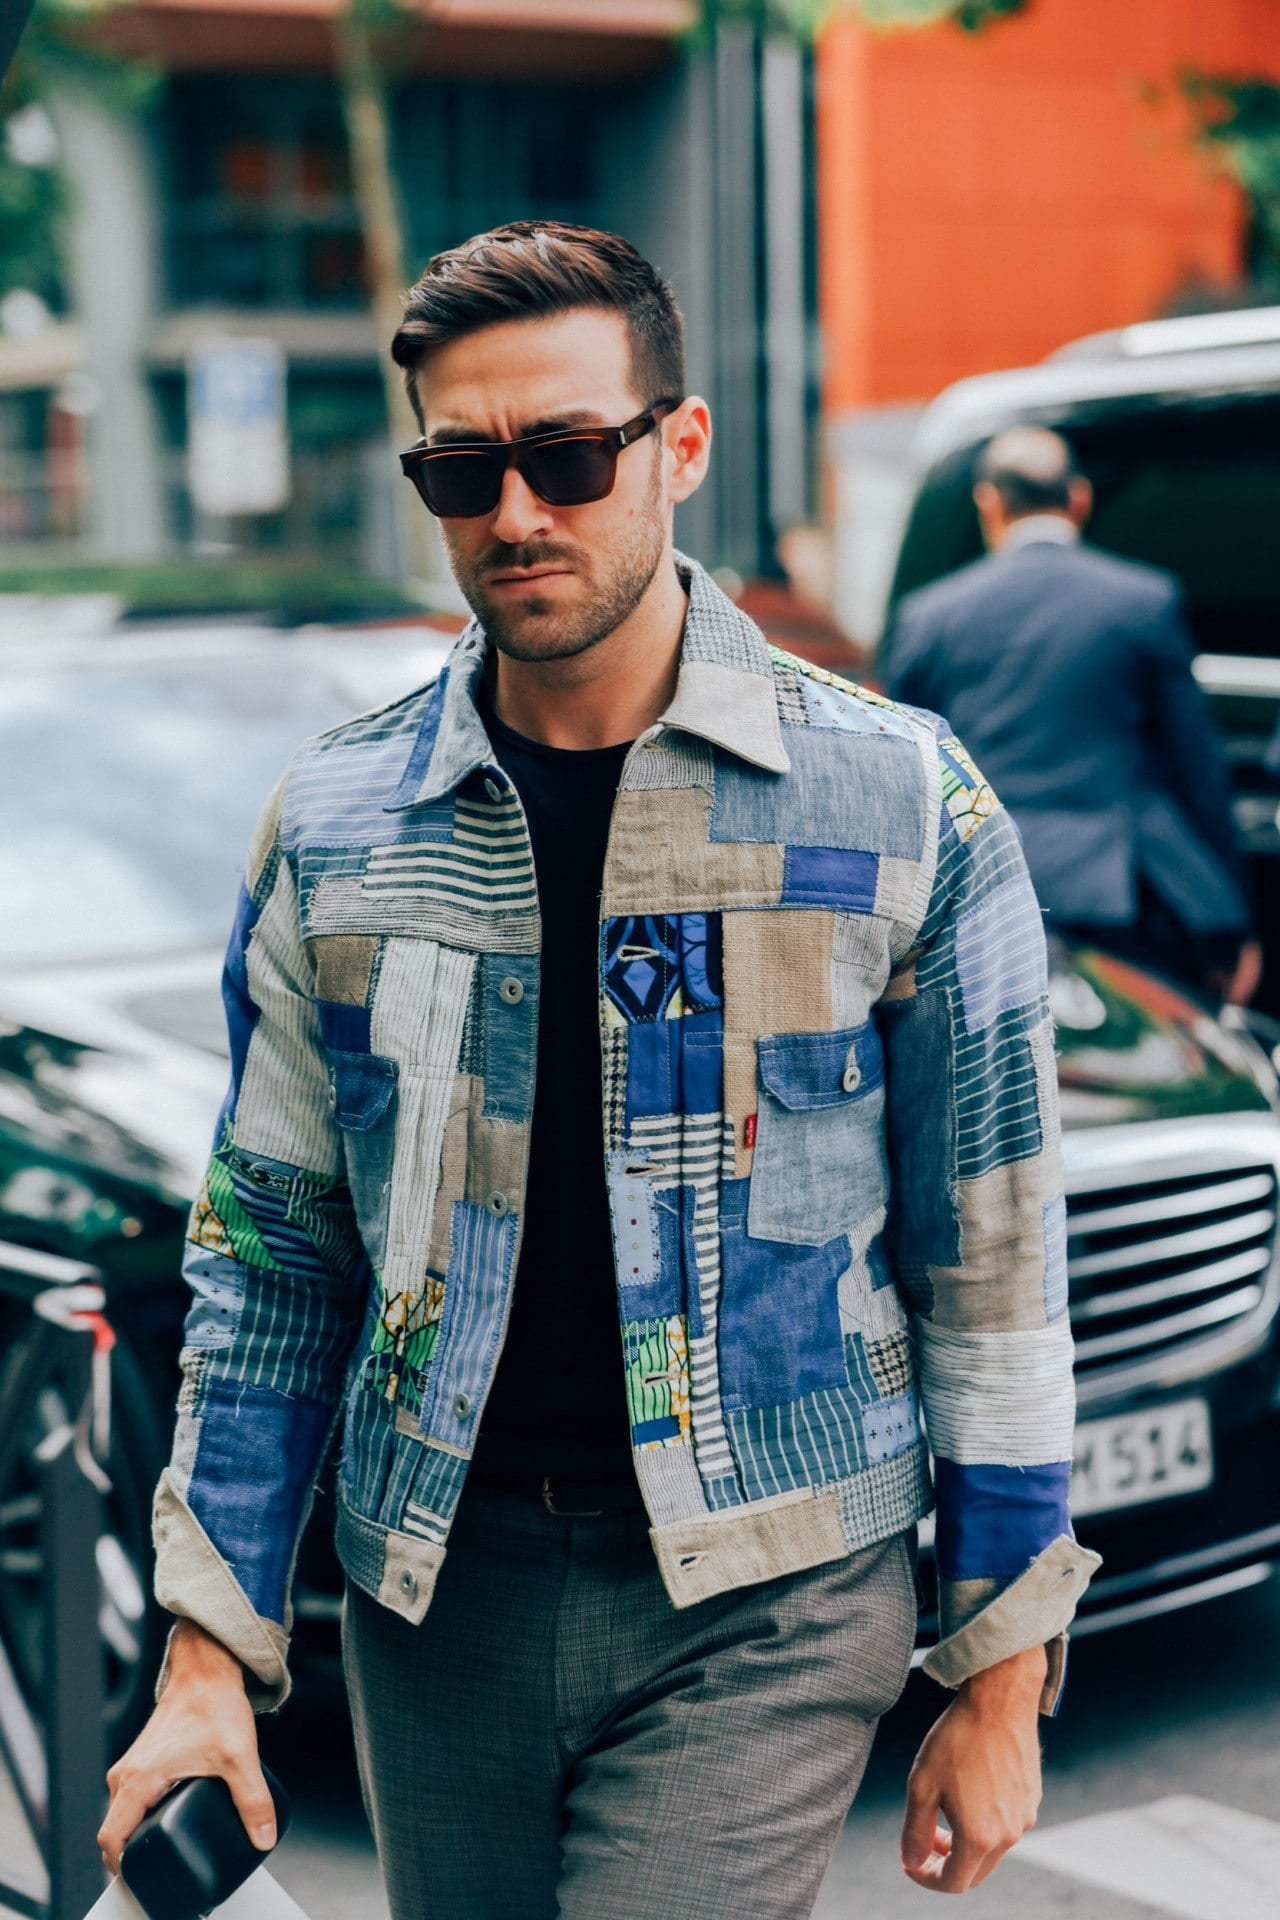 Denim Jackets Outfits For Men